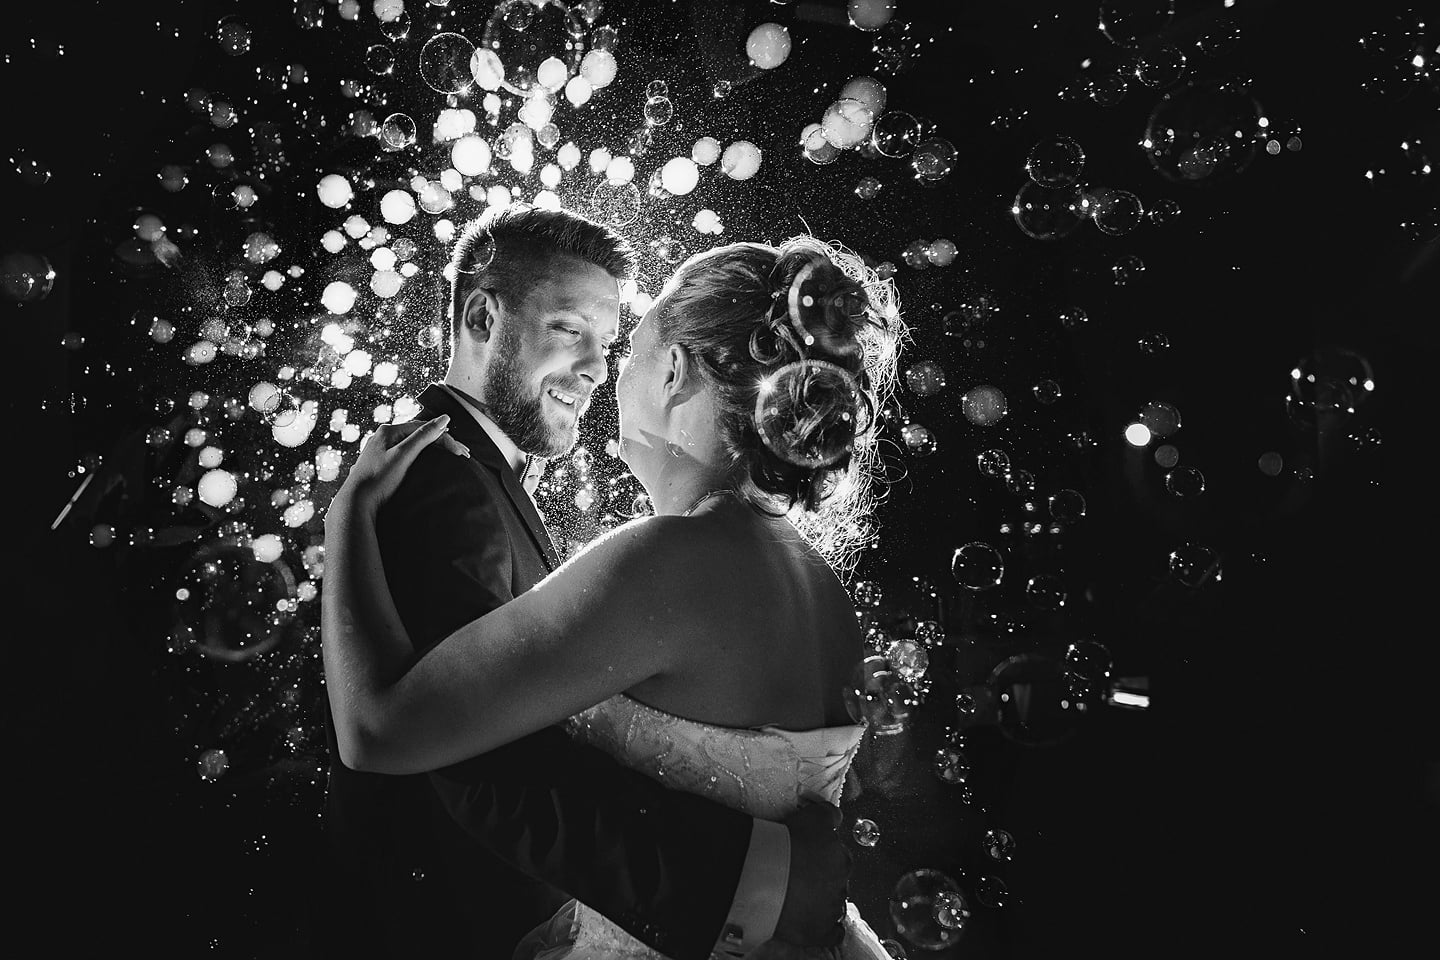 Best Of 2018 Wedding Photography by Aleks & Irena Kus 2